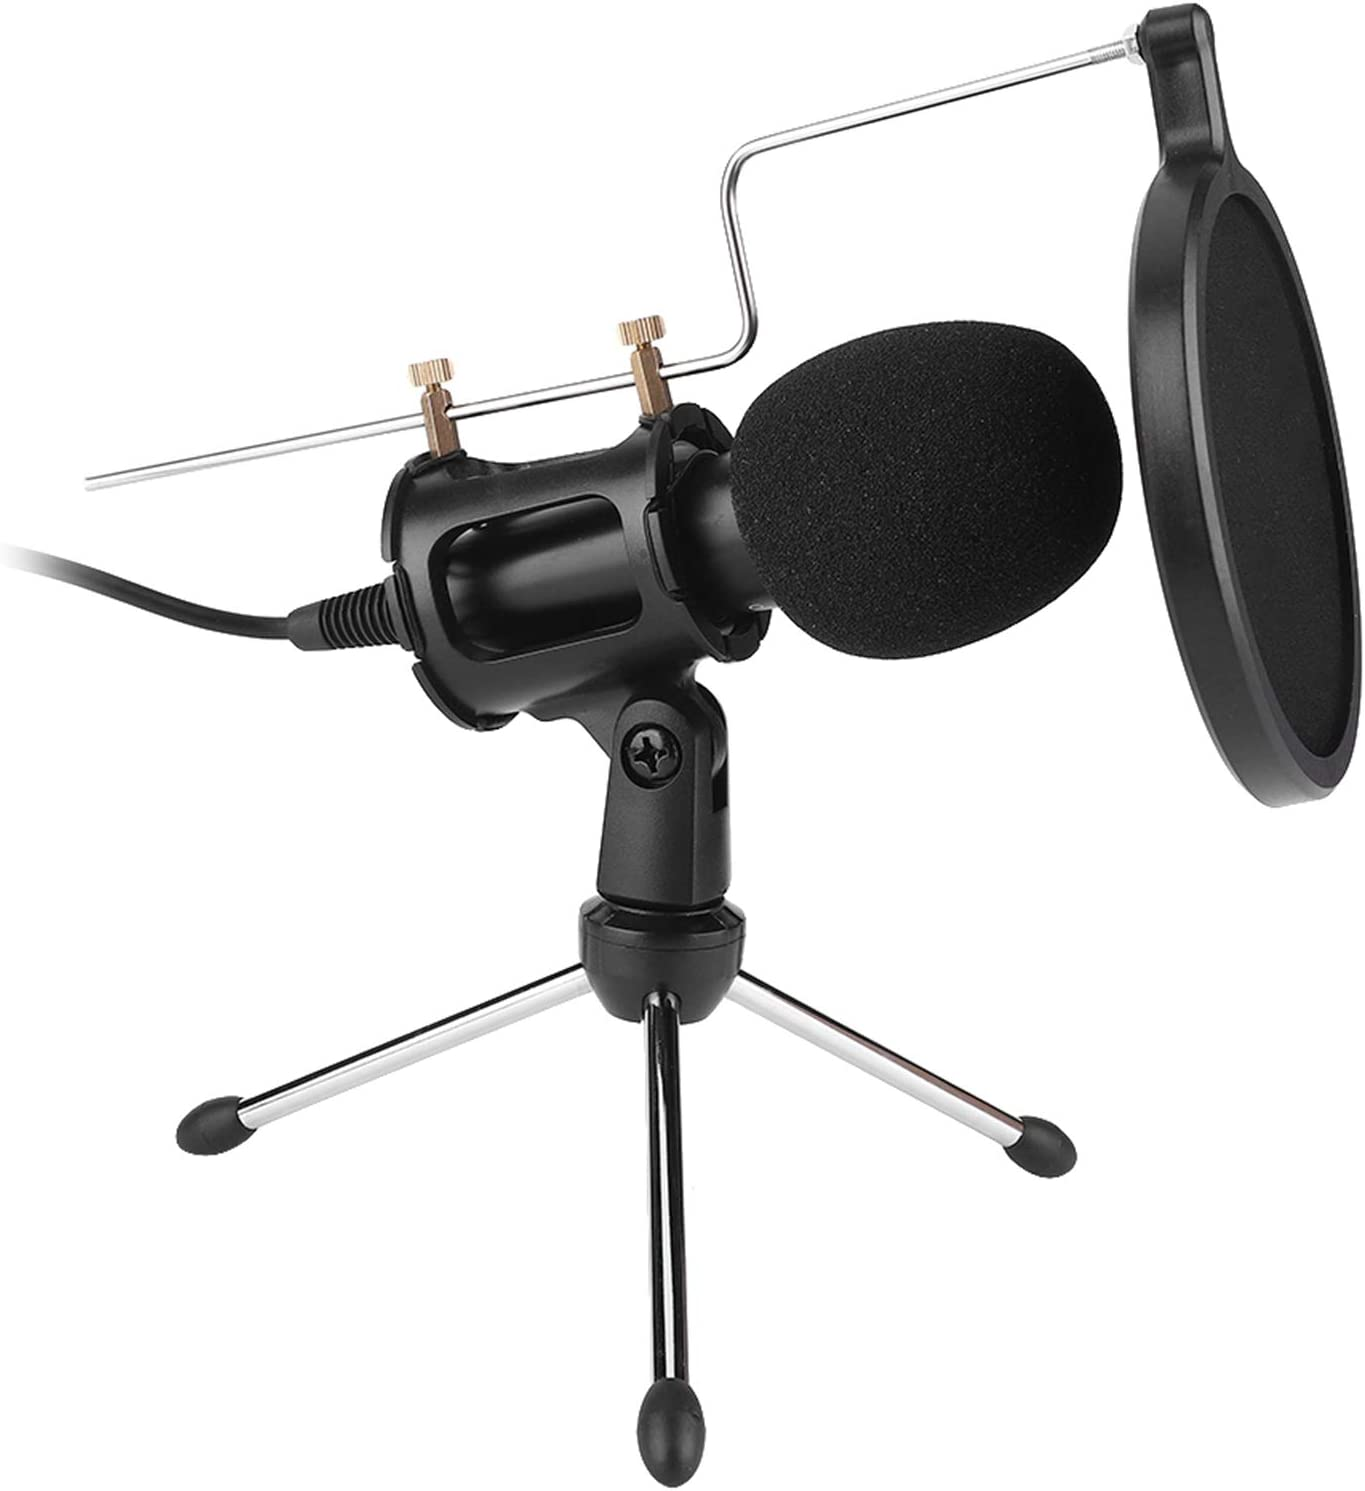 Studio Microphone Max 76% OFF A surprise price is realized Broadcasting Mic Mob for Computer